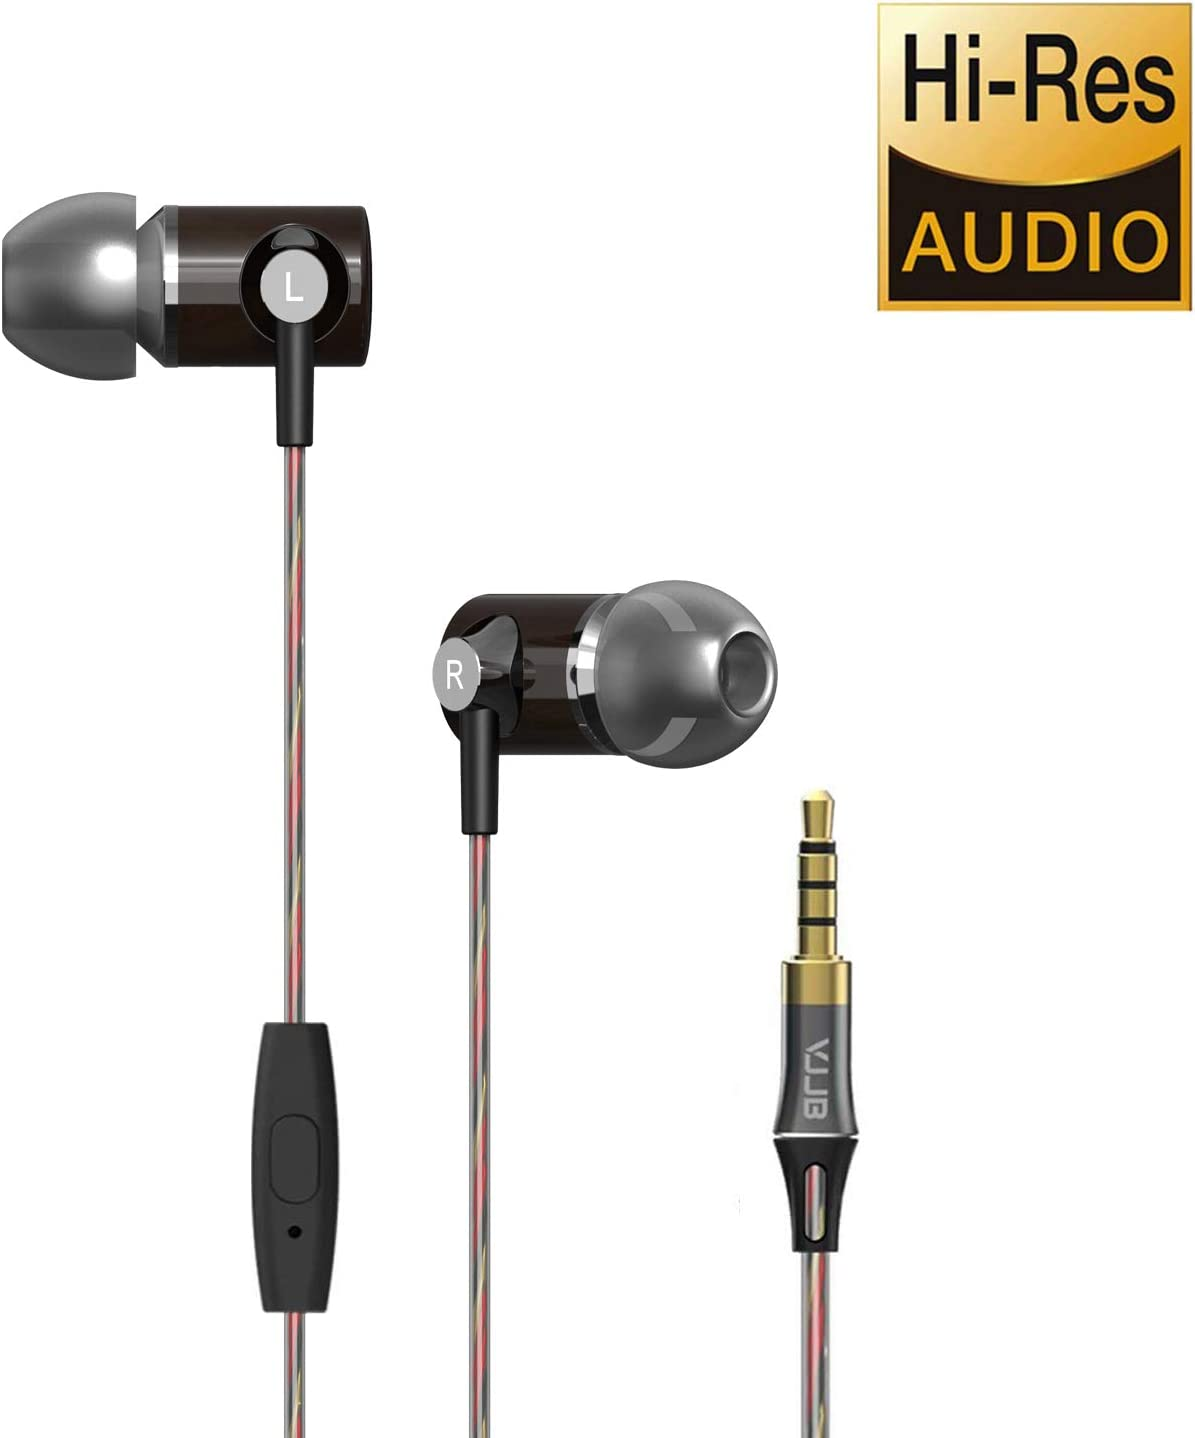 in Ear Headphones, HiFi Bass Stereo Headphones with Microphone Wired Sport Earbud Headphones Wood Tangle Free Earphones Noise Isolating Earbuds for Workout, Running, Gym Black